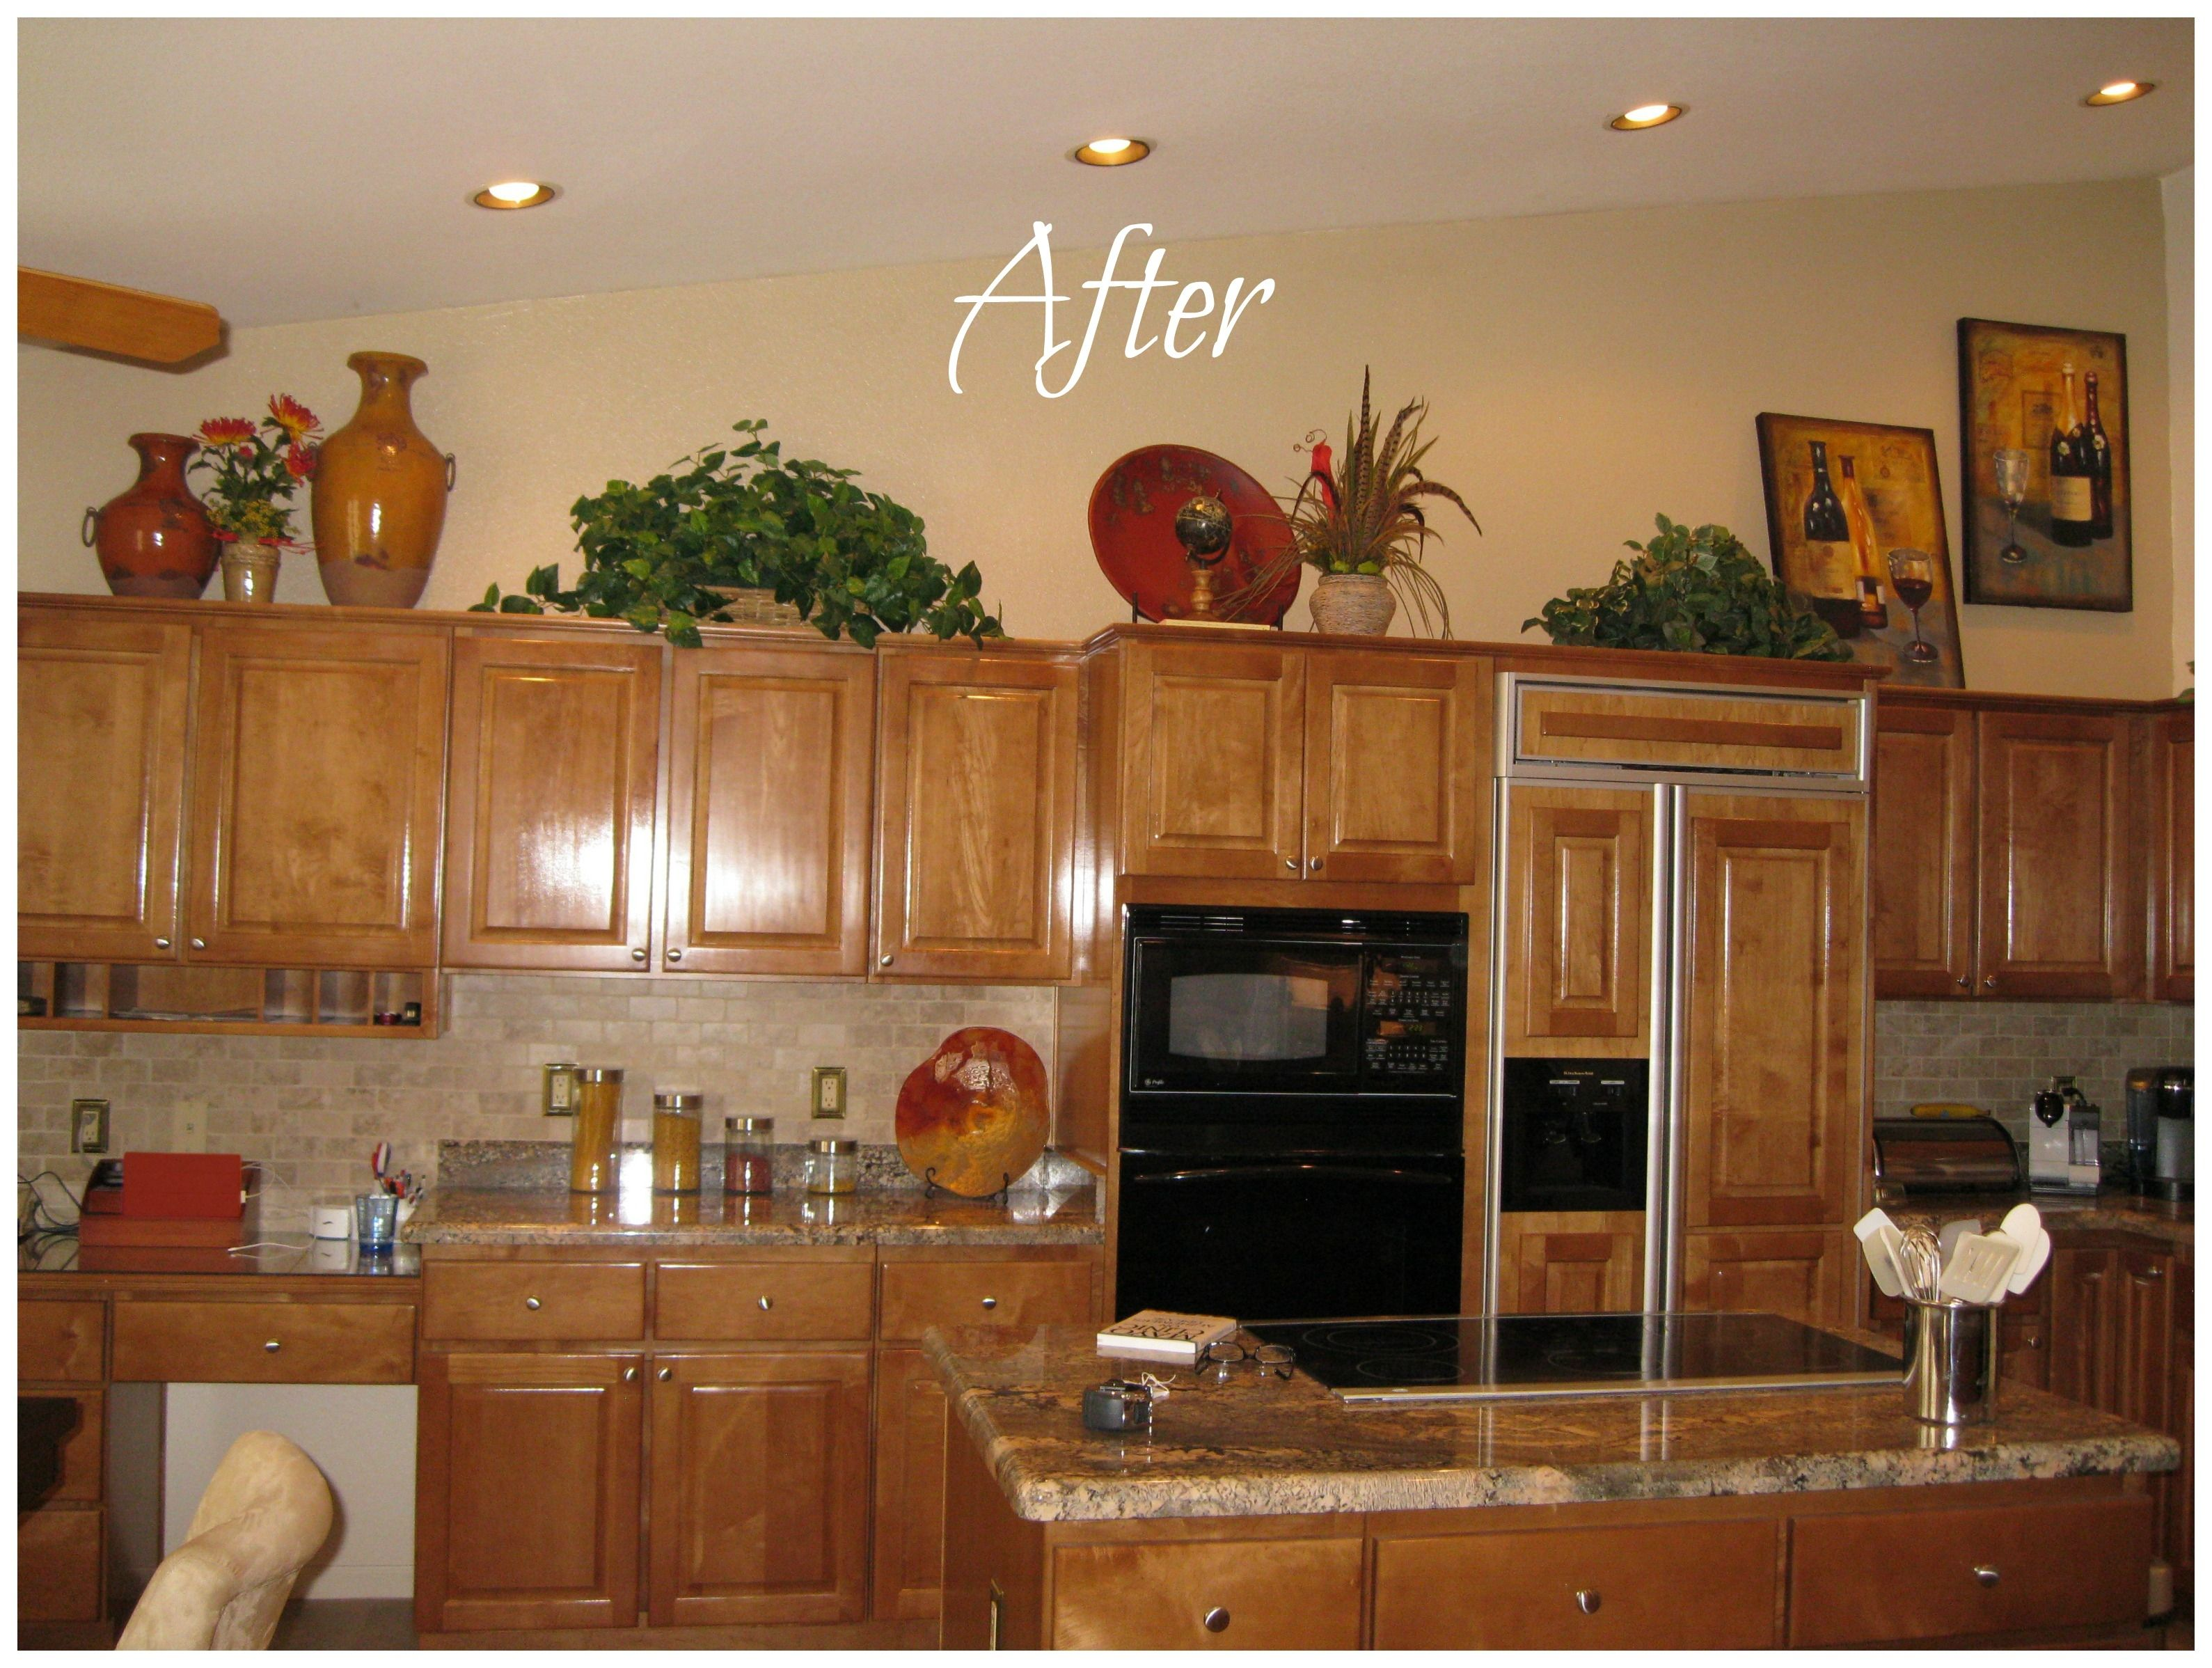 Ideas For Decorating Kitchen Cabinets When You Have Implemented The Decorating Decorating Above Kitchen Cabinets Above Kitchen Cabinets Top Kitchen Cabinets